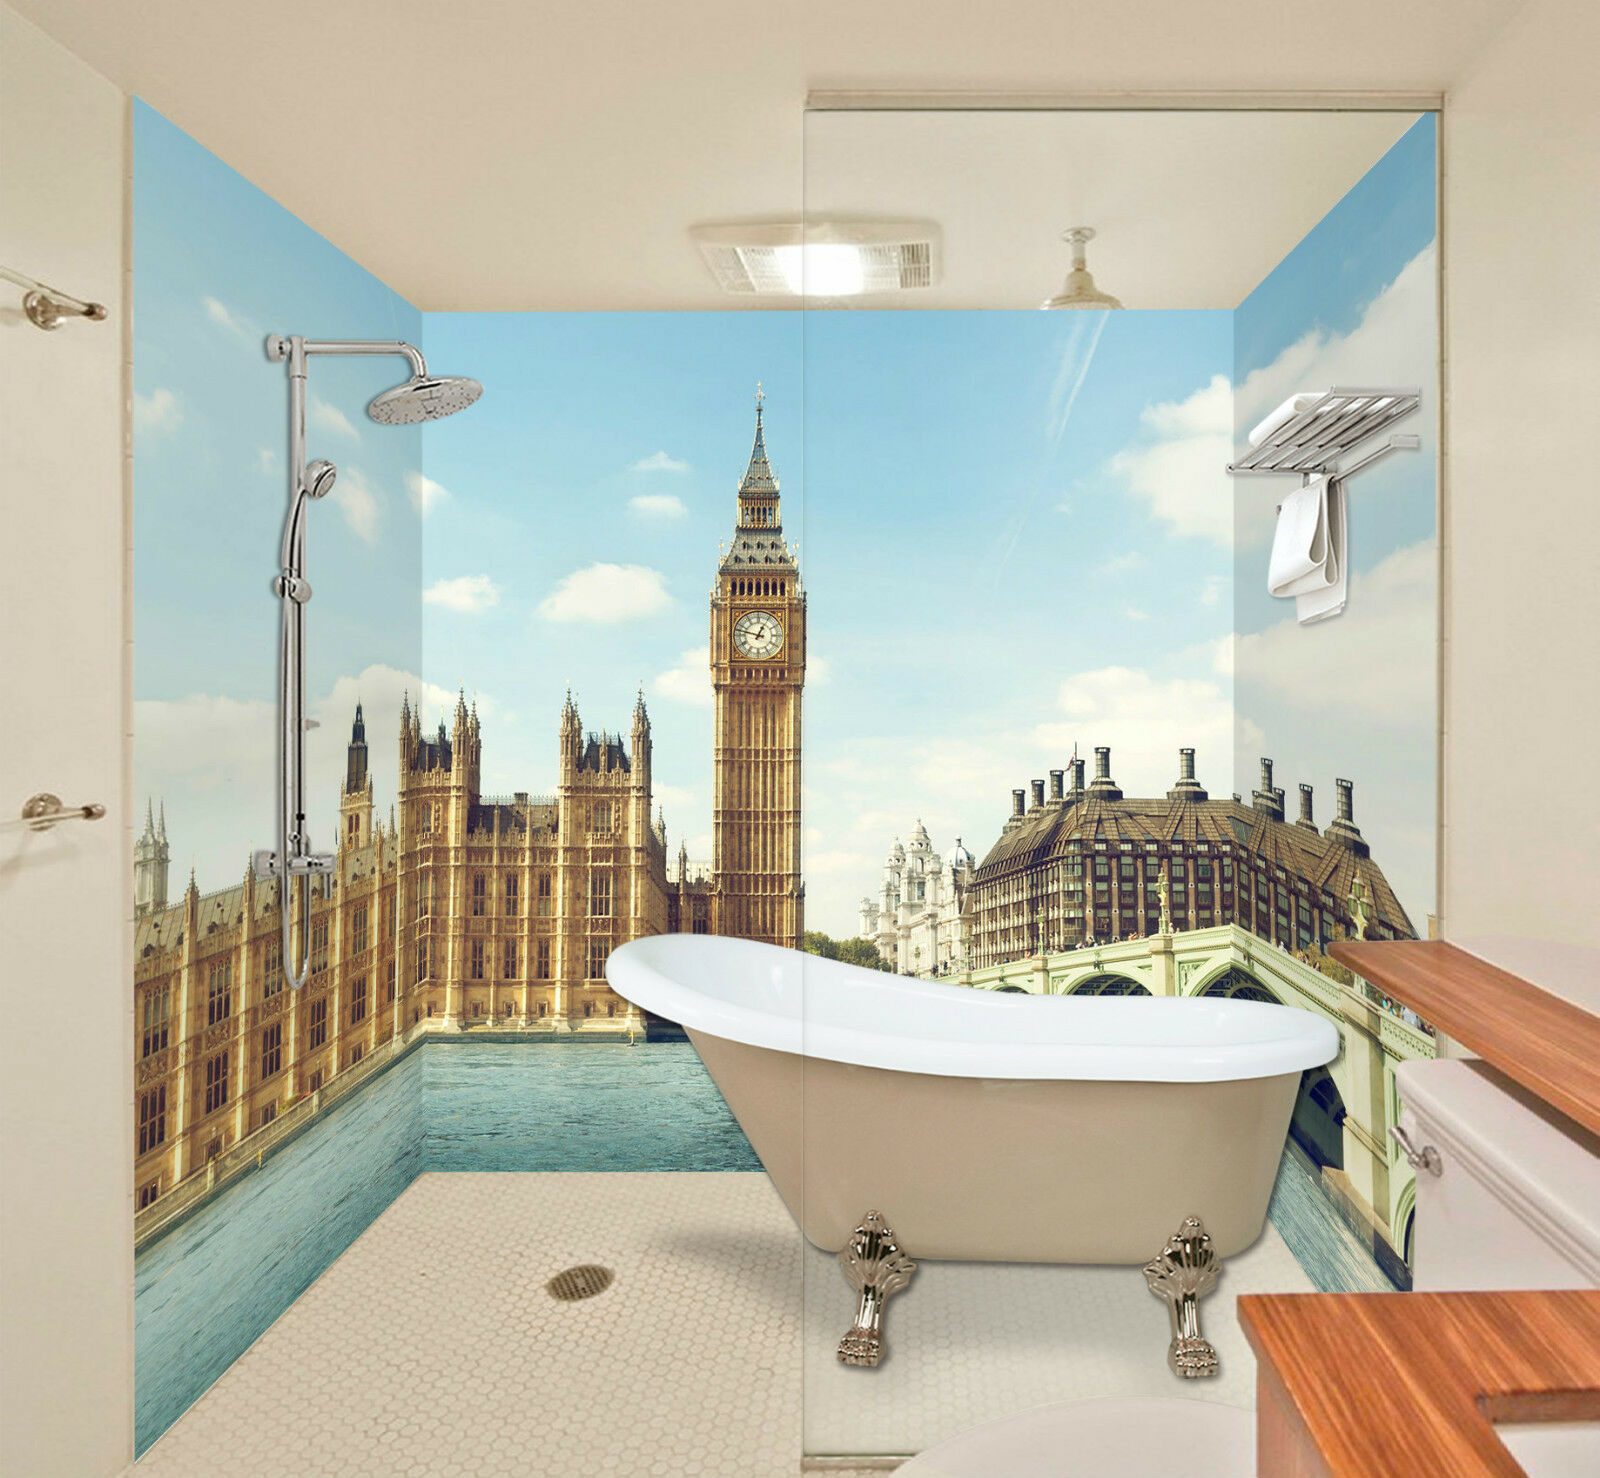 3D London Scenery 067 WallPaper Bathroom Print Decal Wall Deco AJ WALLPAPER CA